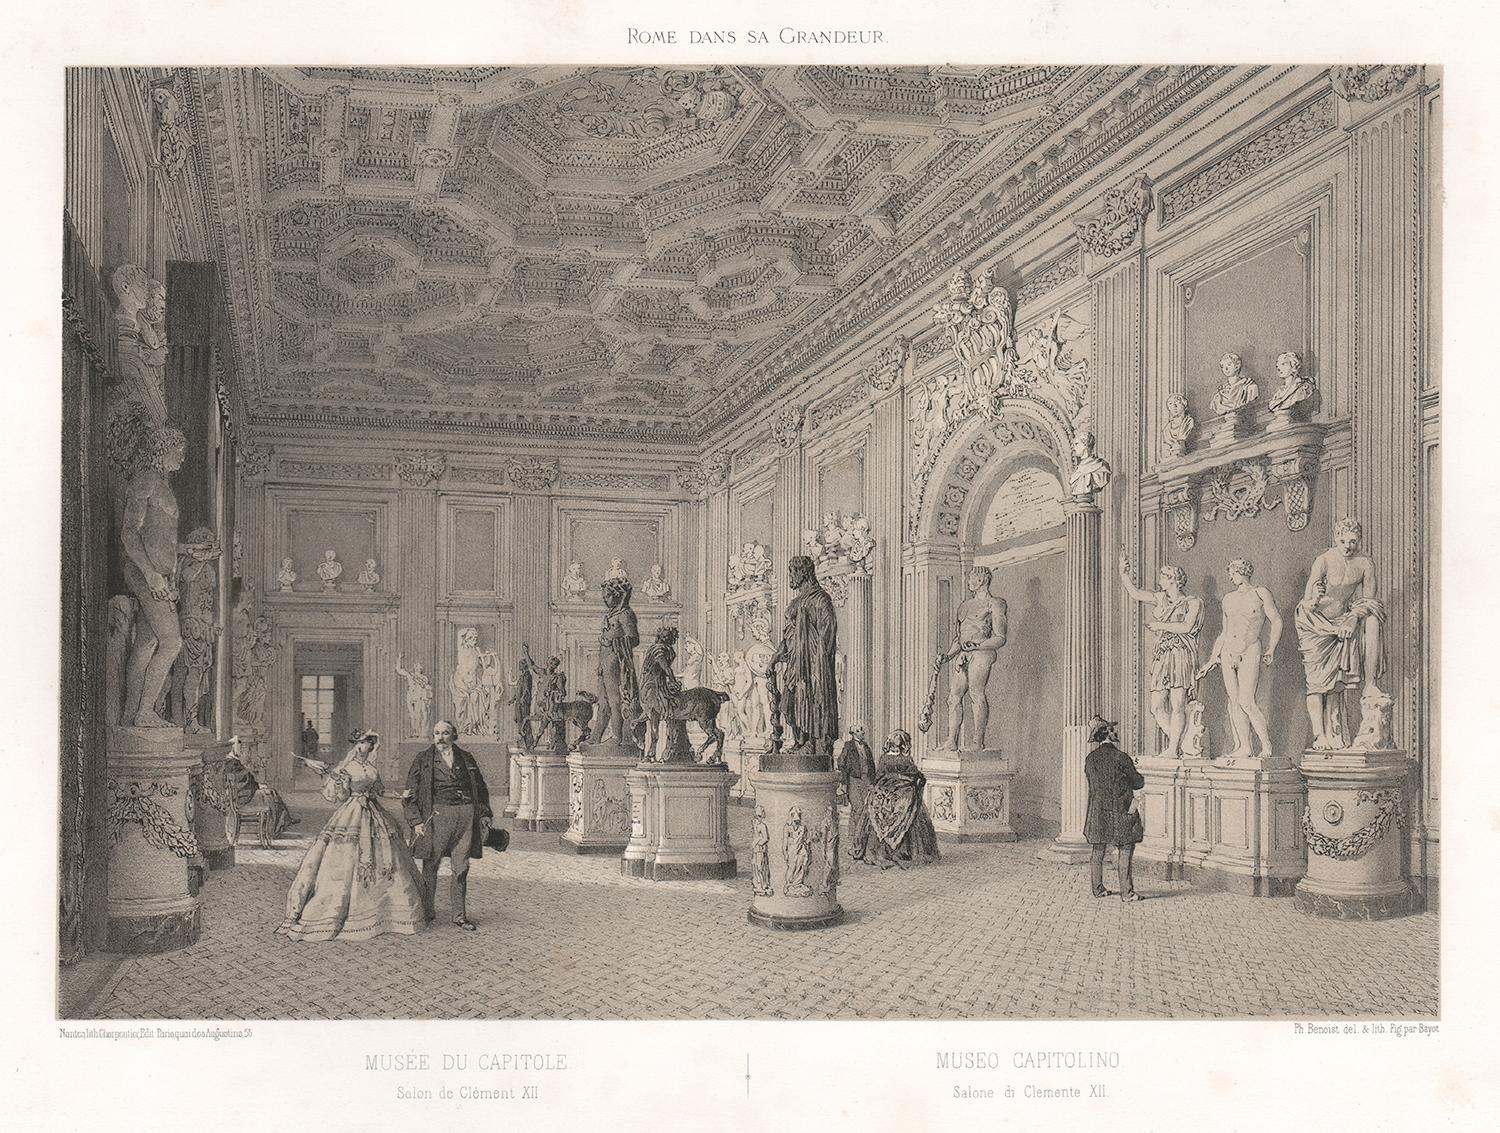 Capitoline Museum, Rome, Italy. Classical sculpture. Tinted lithograph, 1870